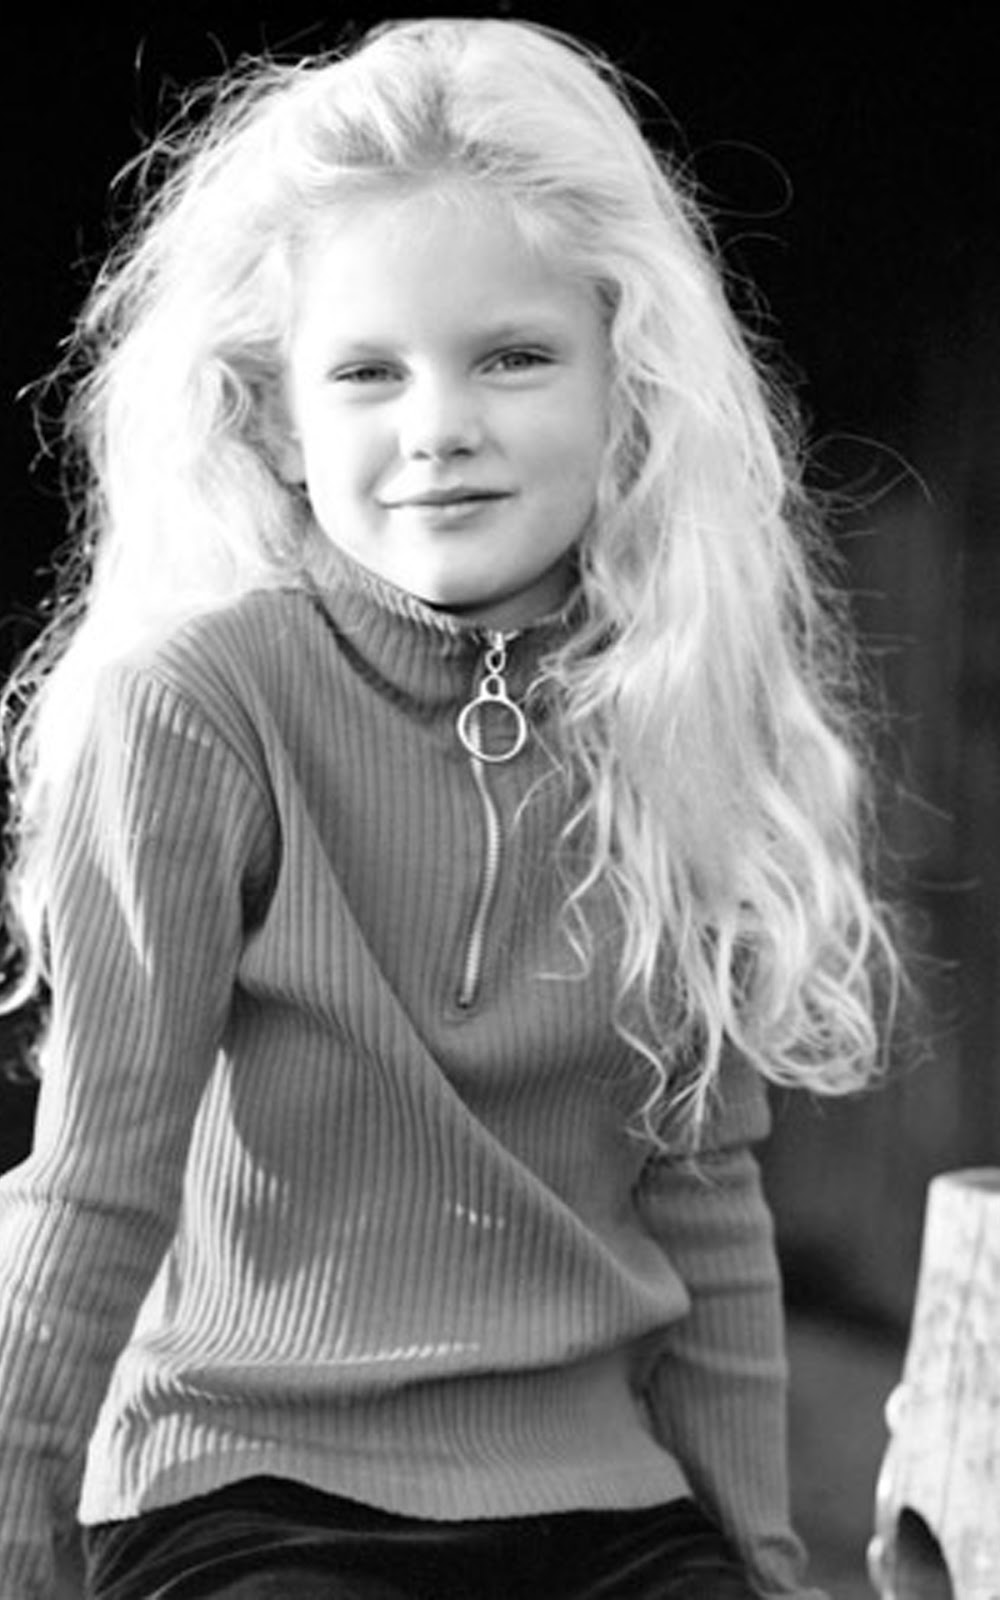 TAYLOR SWIFT AS A CHILD